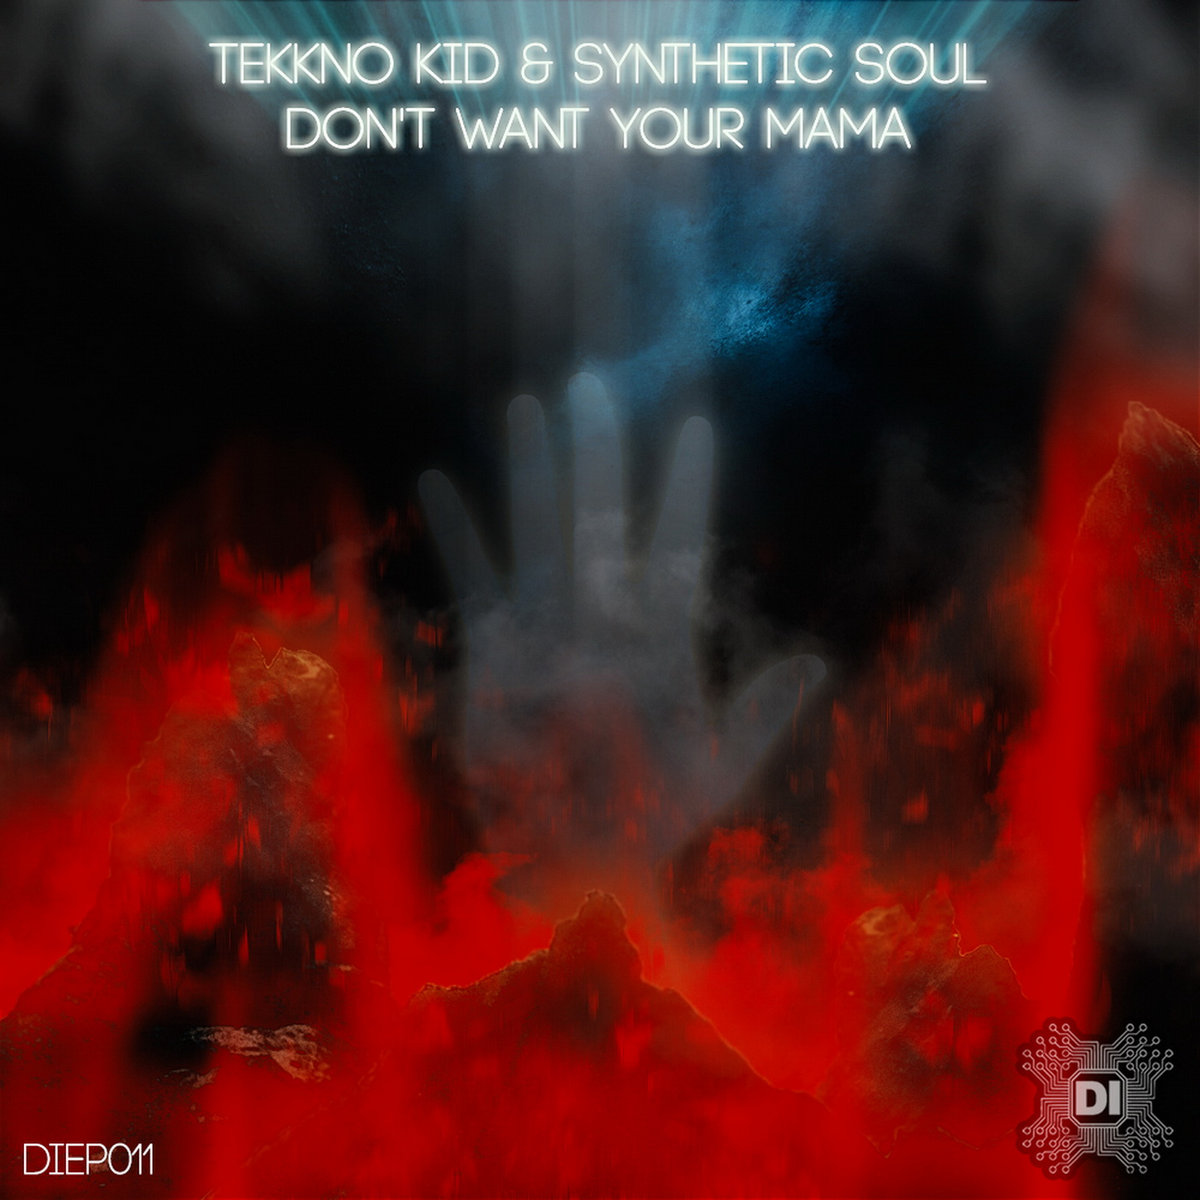 Image of: By Tekkno Kid Synthetic Soul Darkstep Implantant Bandcamp Dont Want Your Mama Ep Darkstep Implantant